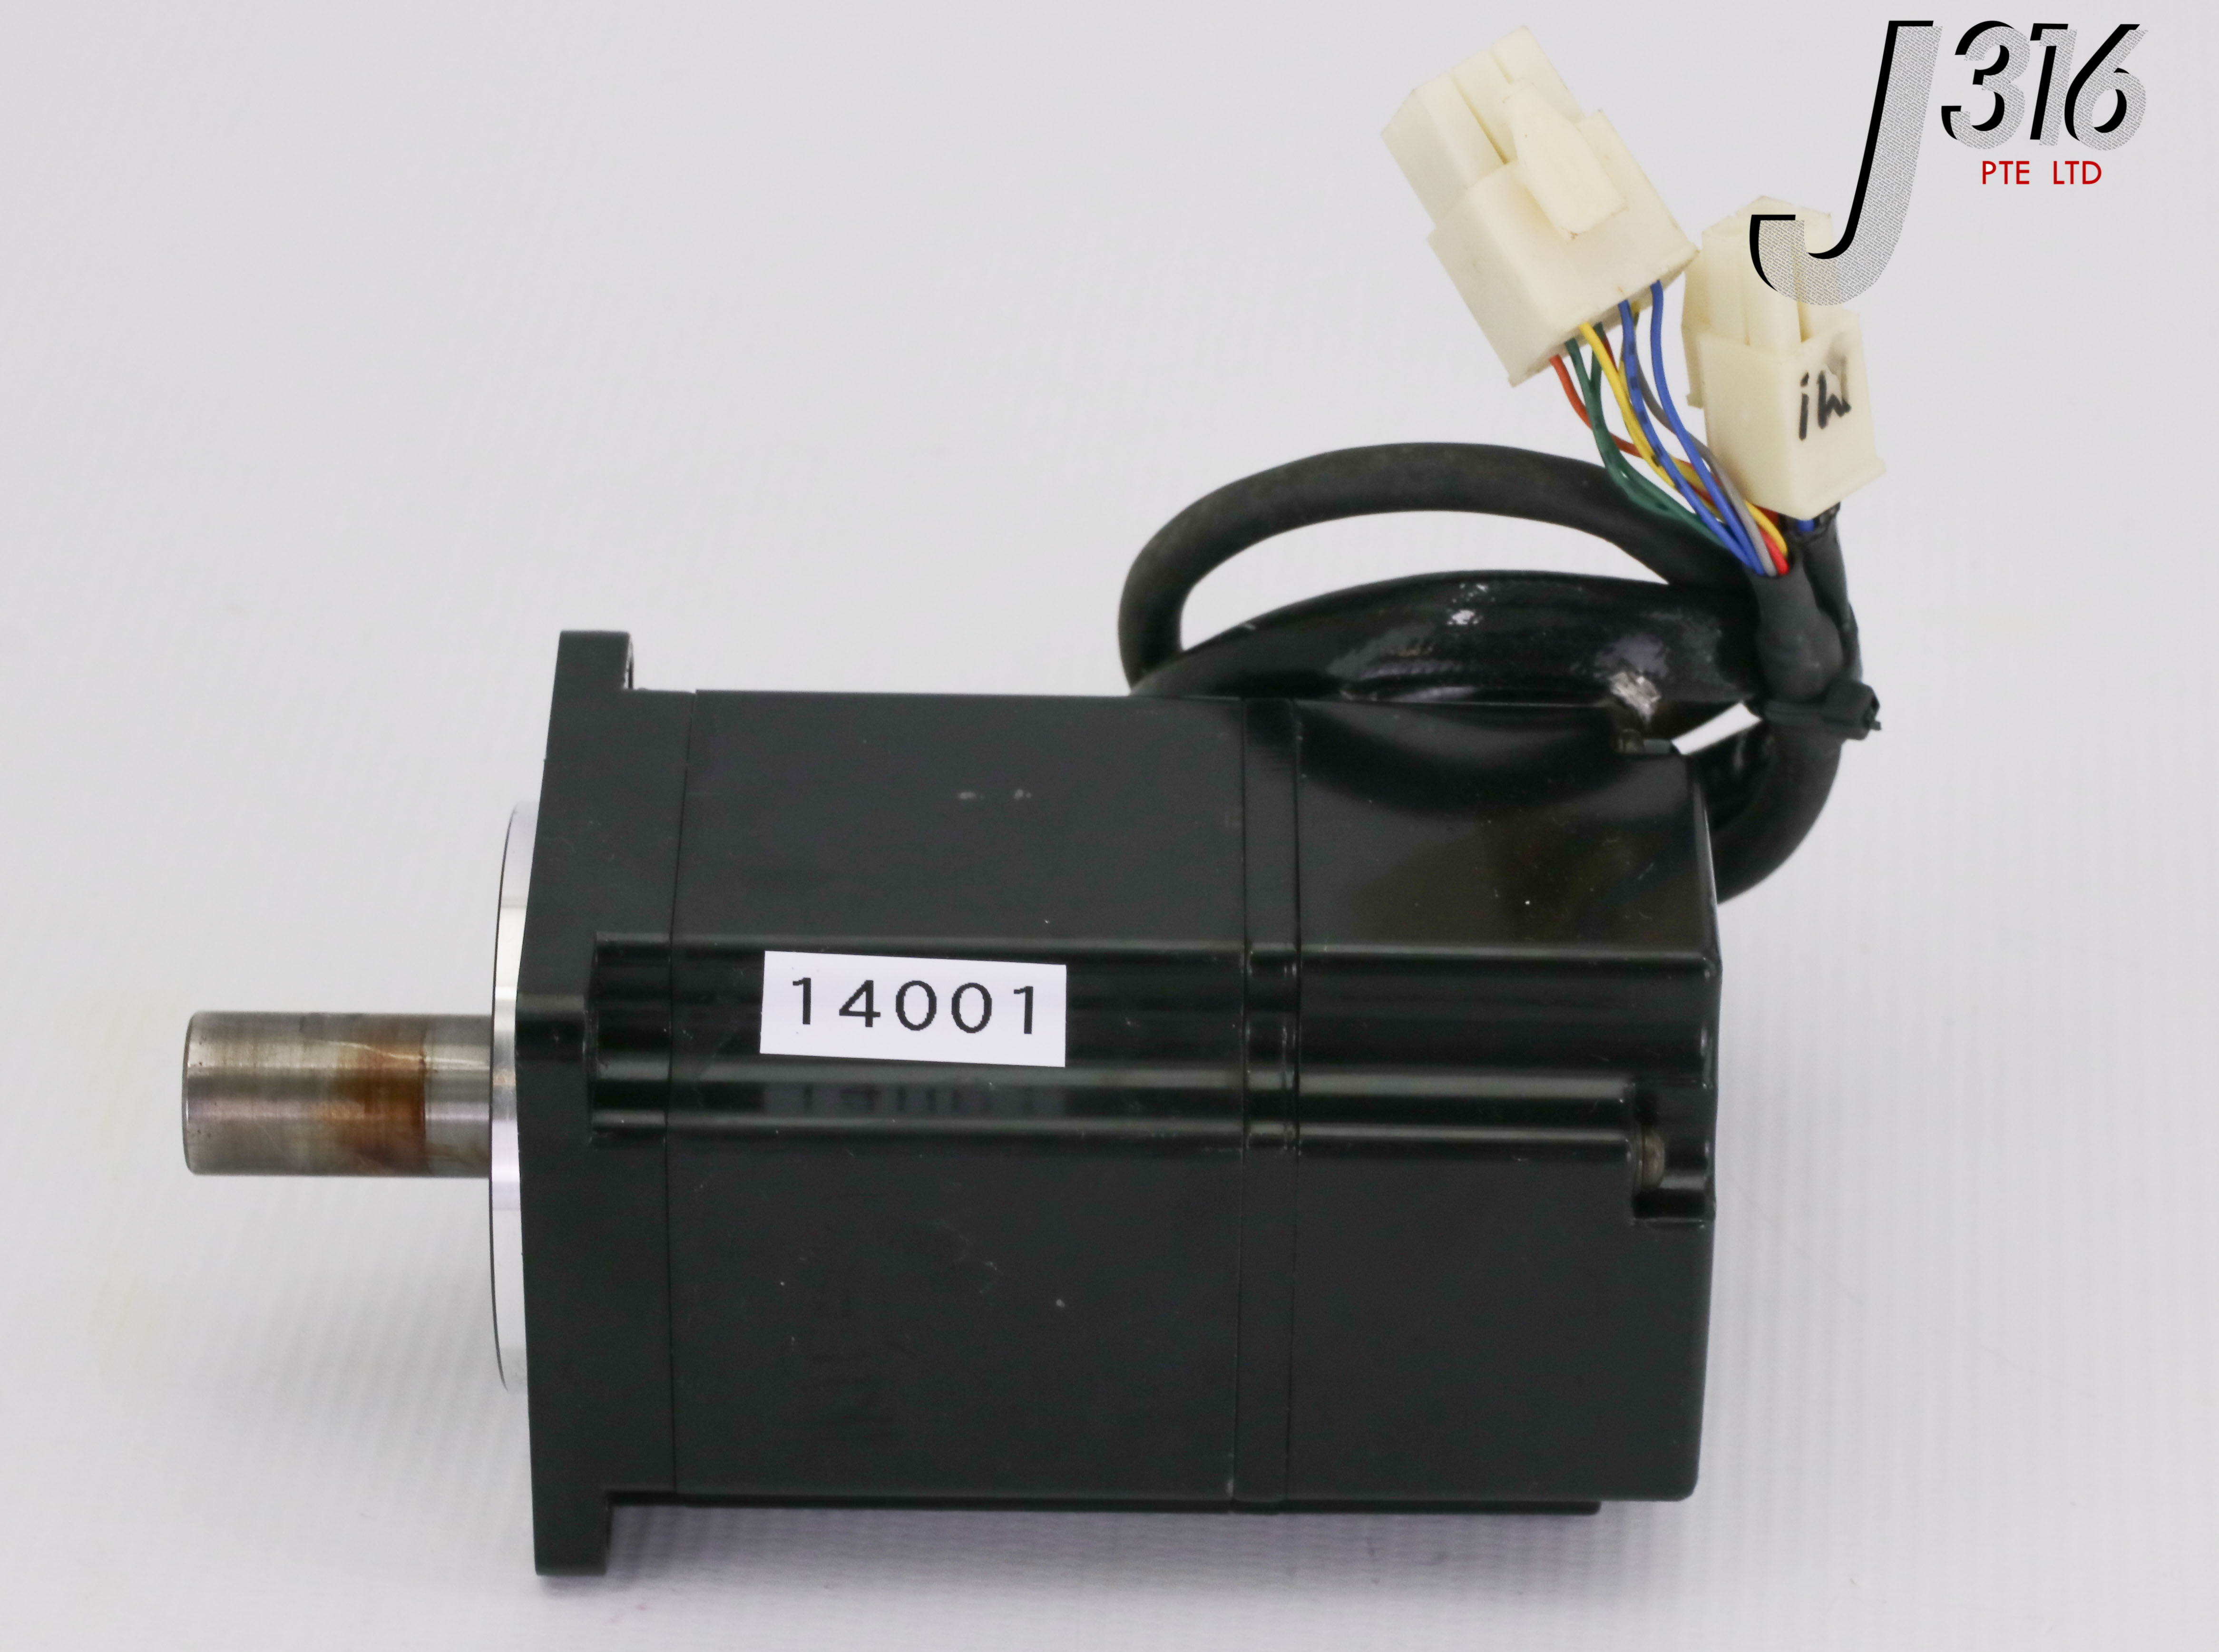 Yaskawa servo motor SGM-04A314C good in condition for industry use